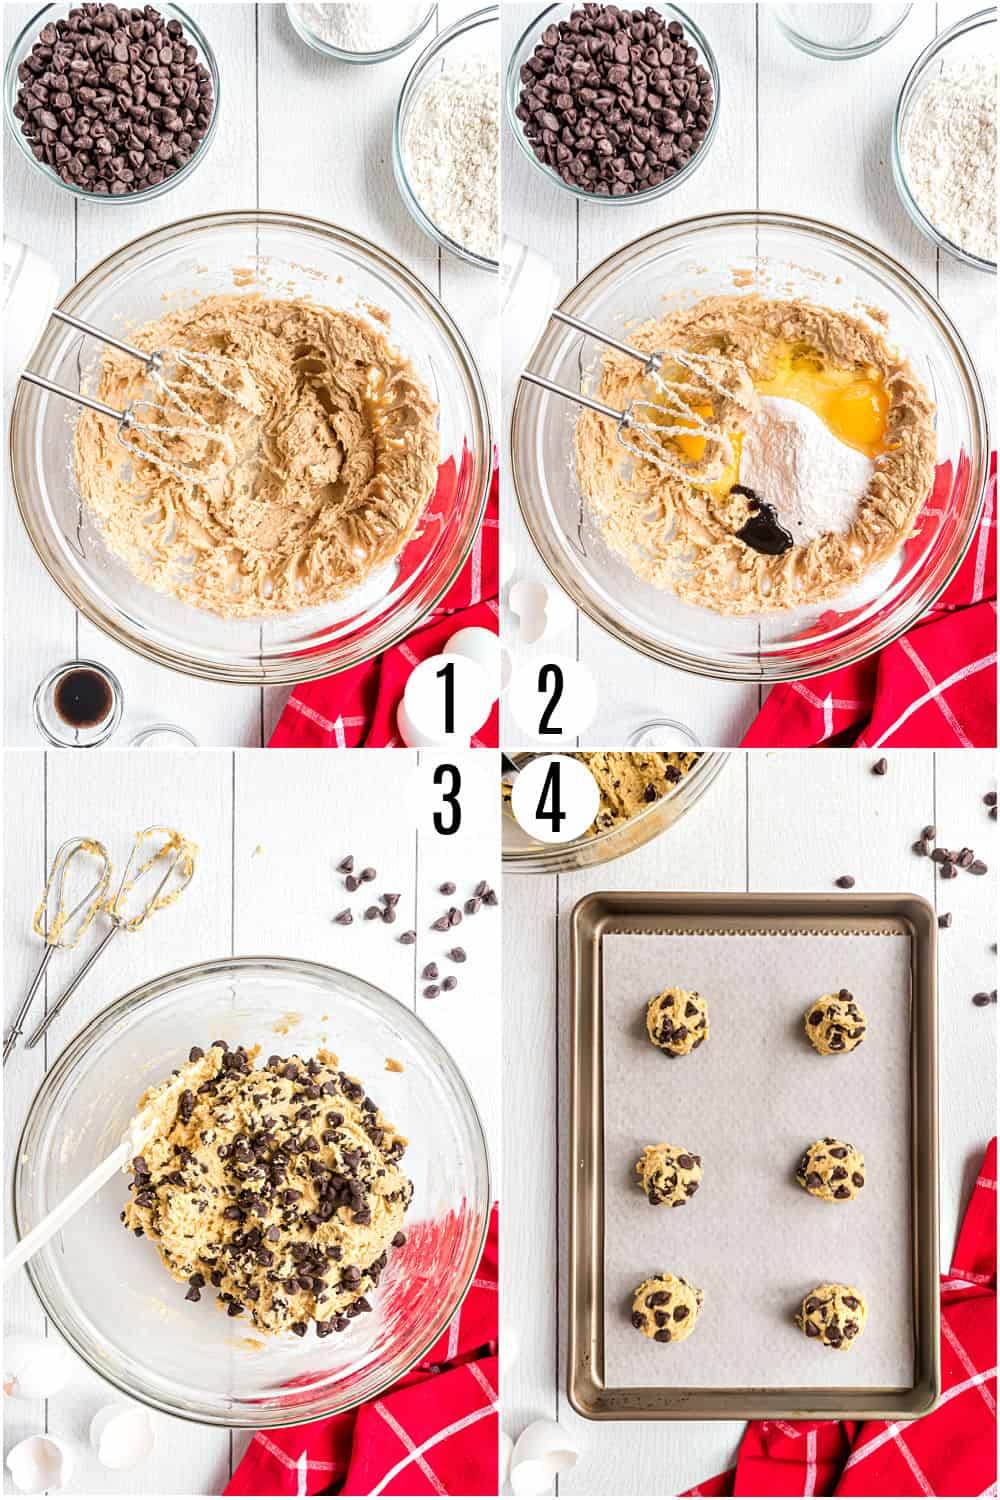 Step by step photos showing how to make chocolate chip cookies with pudding mix.